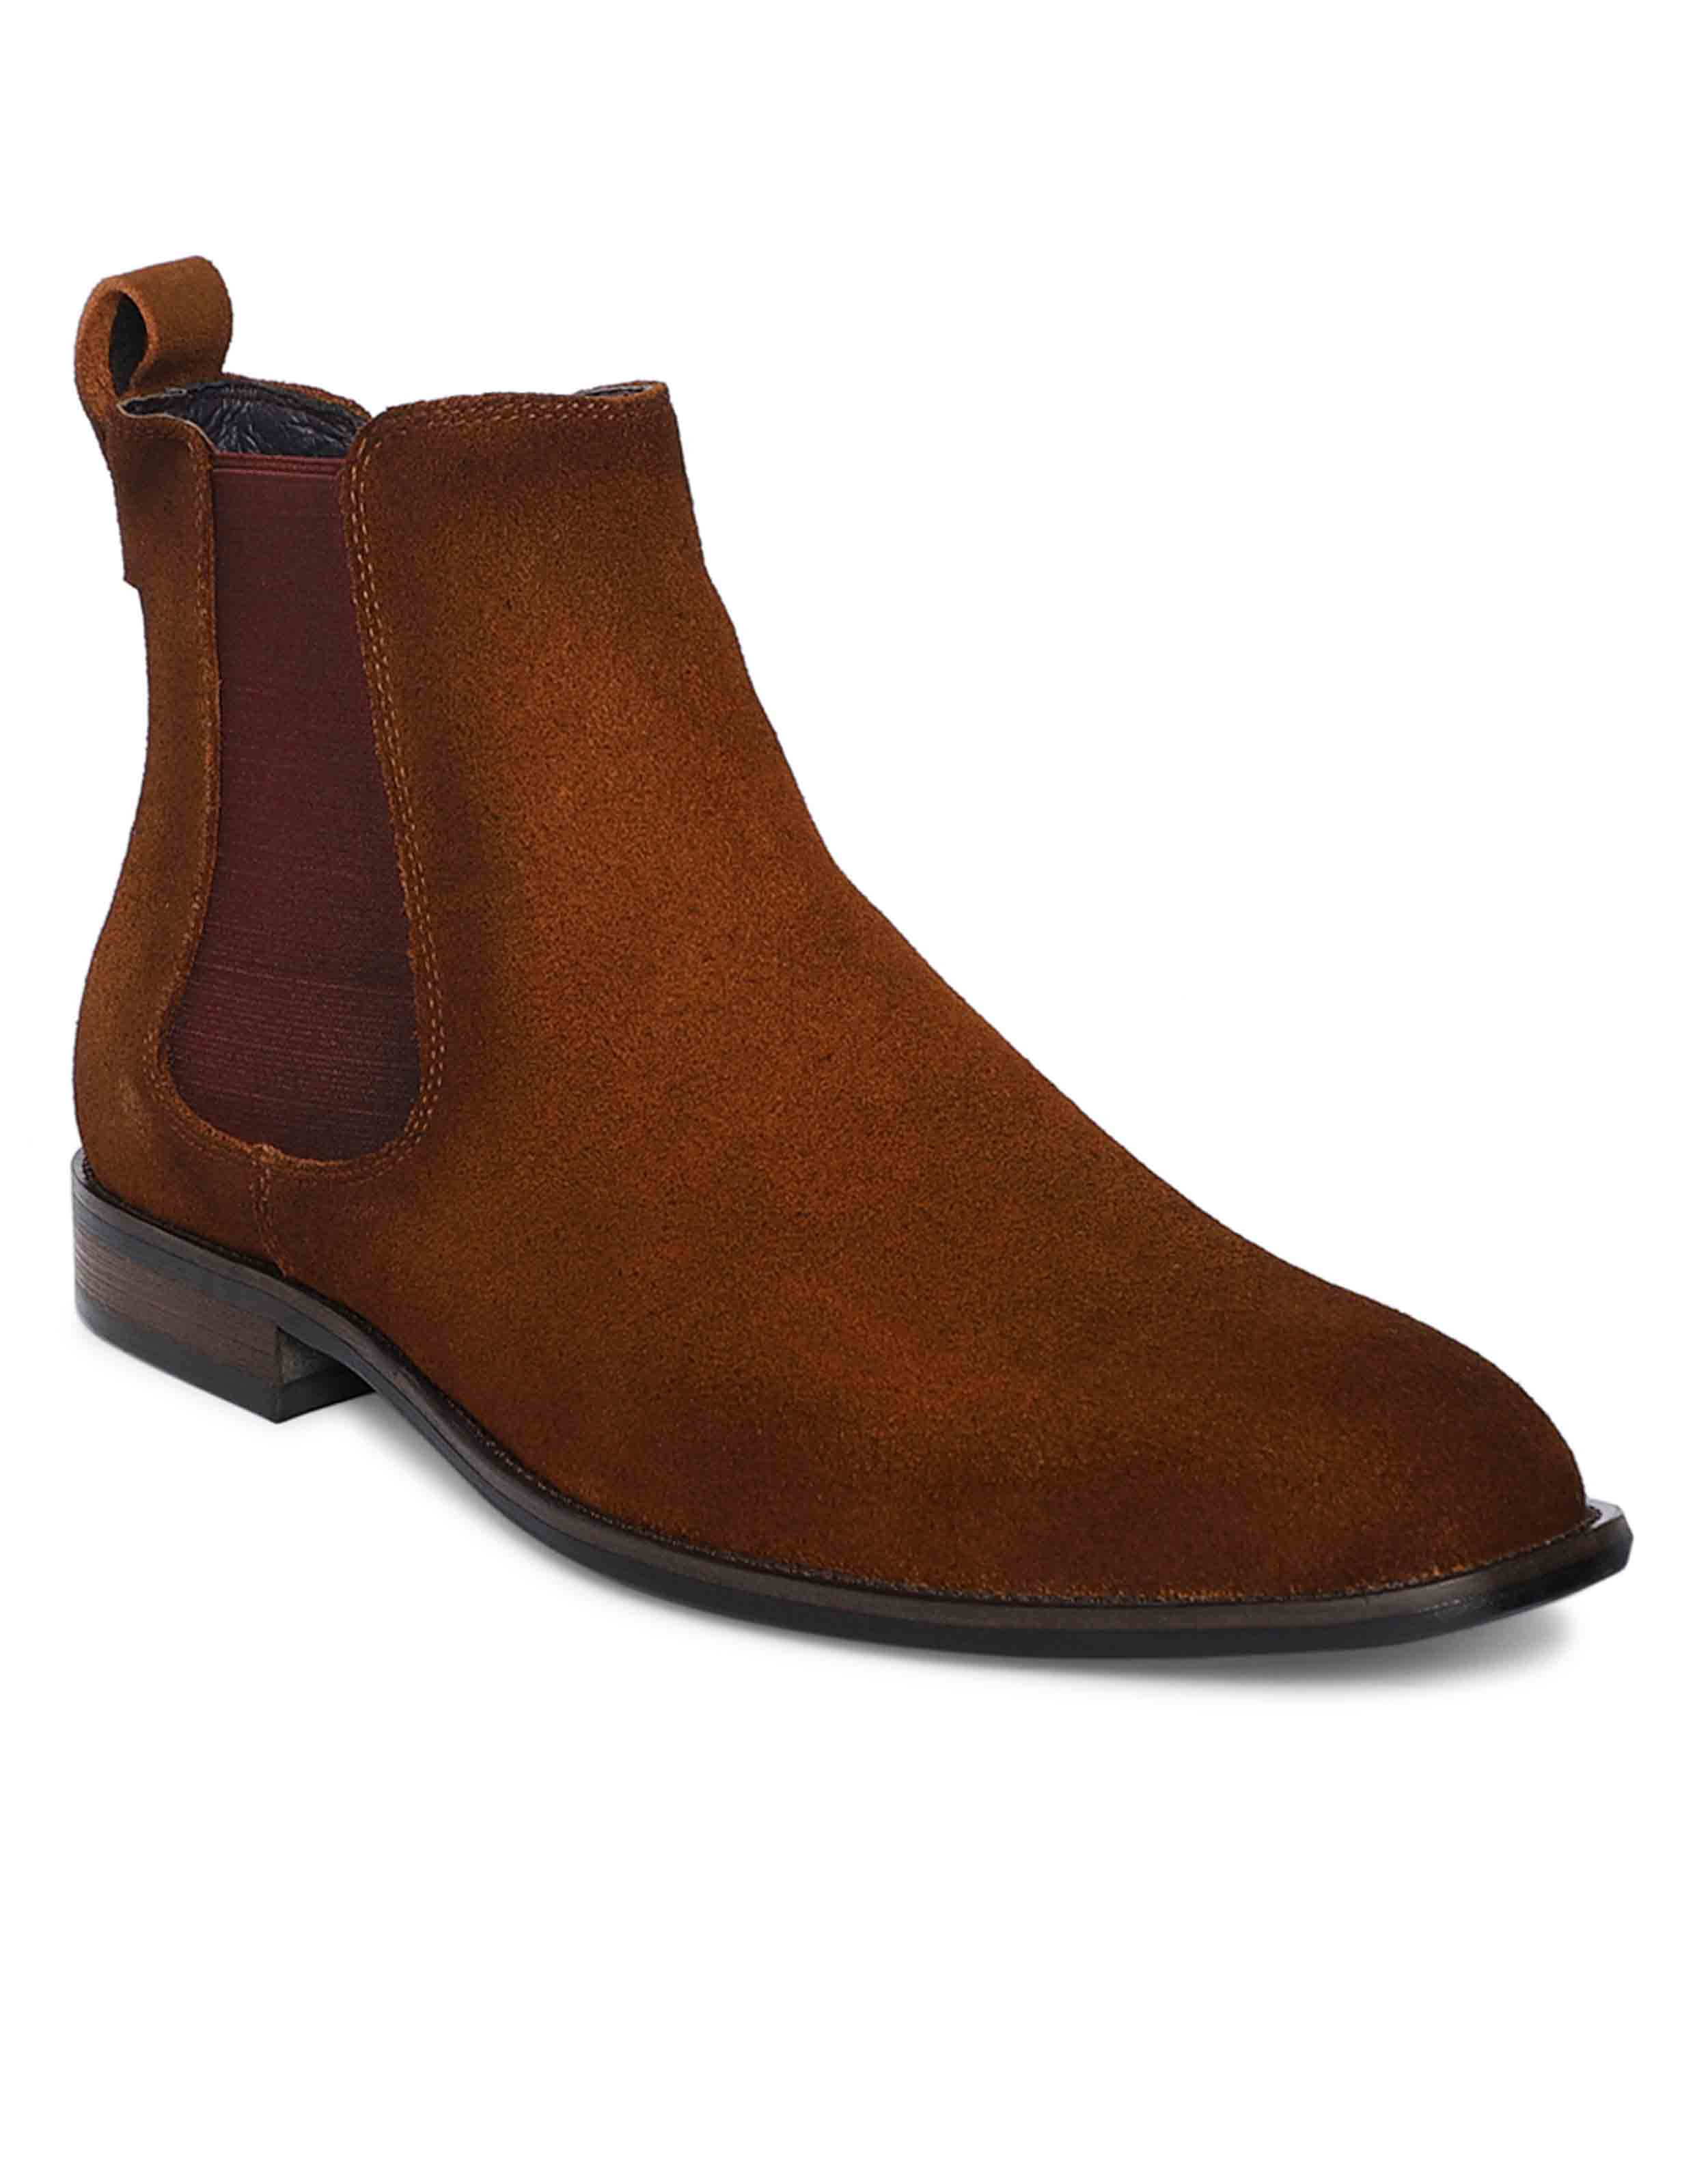 Tan Suede Chealse Boots2